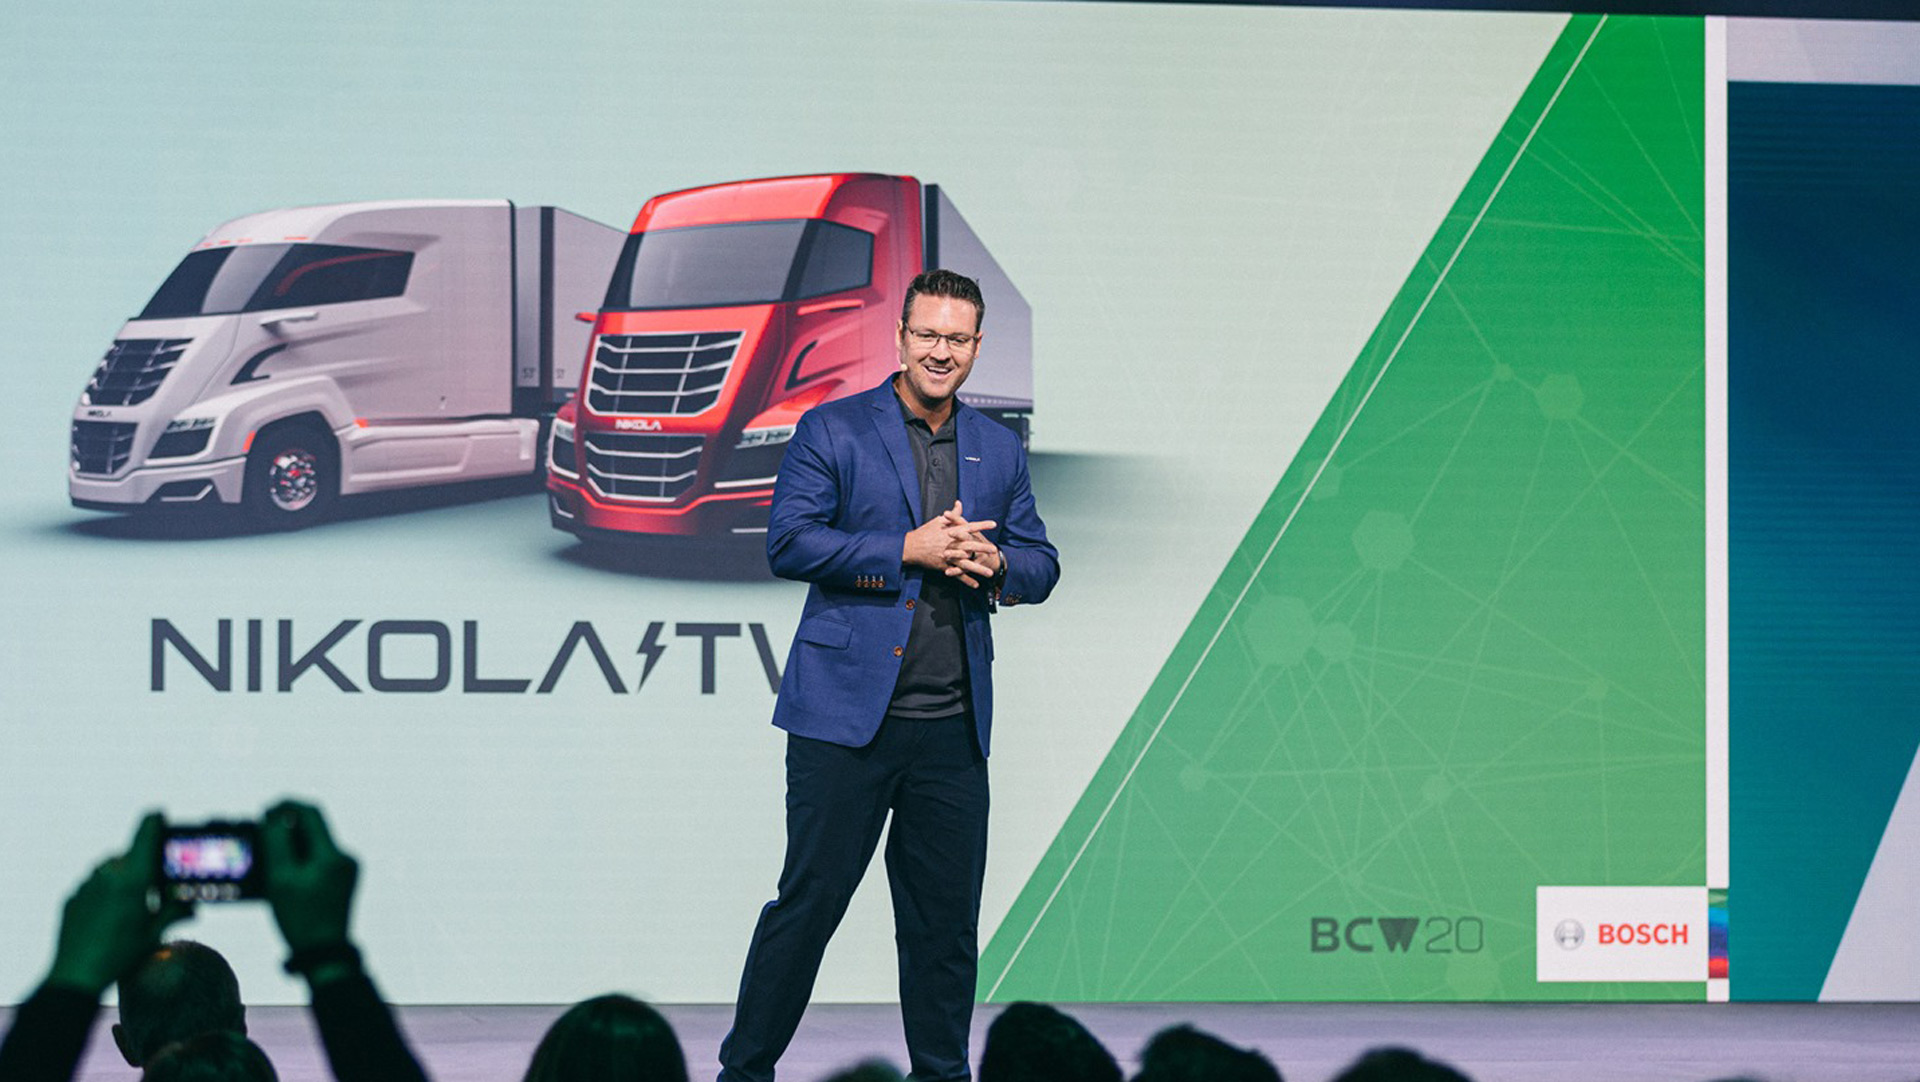 Head of EV startup Nikola steps down amid fraud allegations